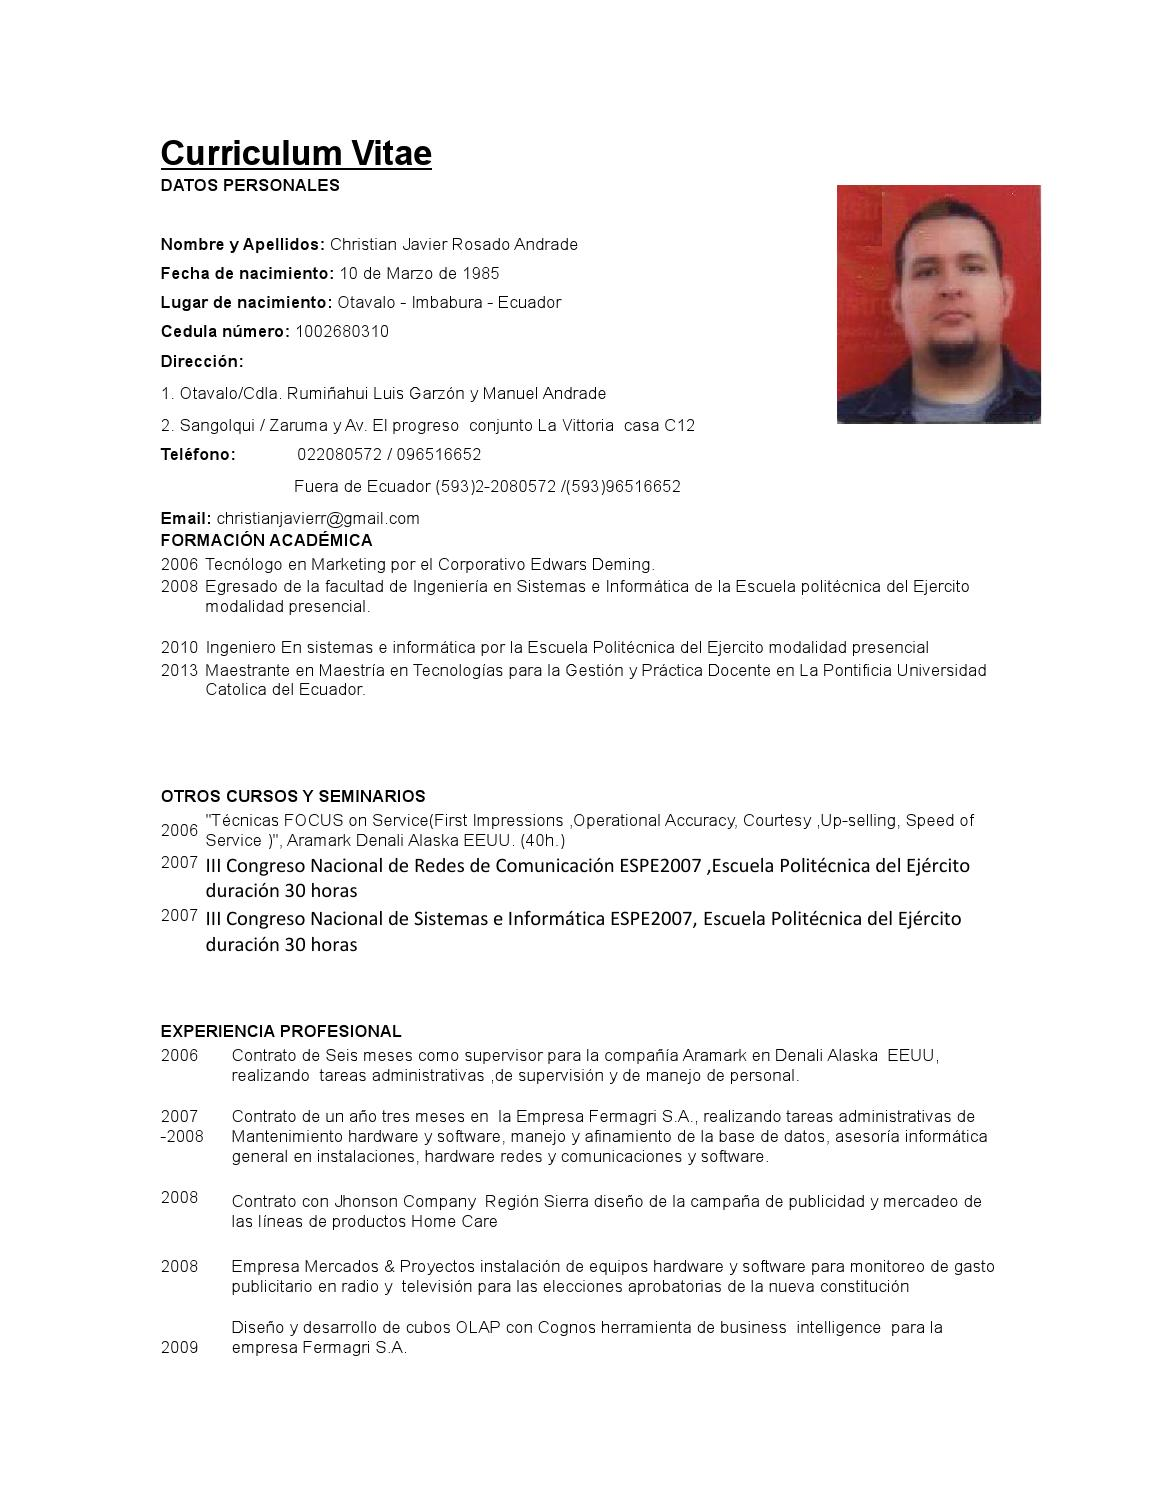 Curriculum Vitae Christian Rosado Copia By Christian Rosado Issuu